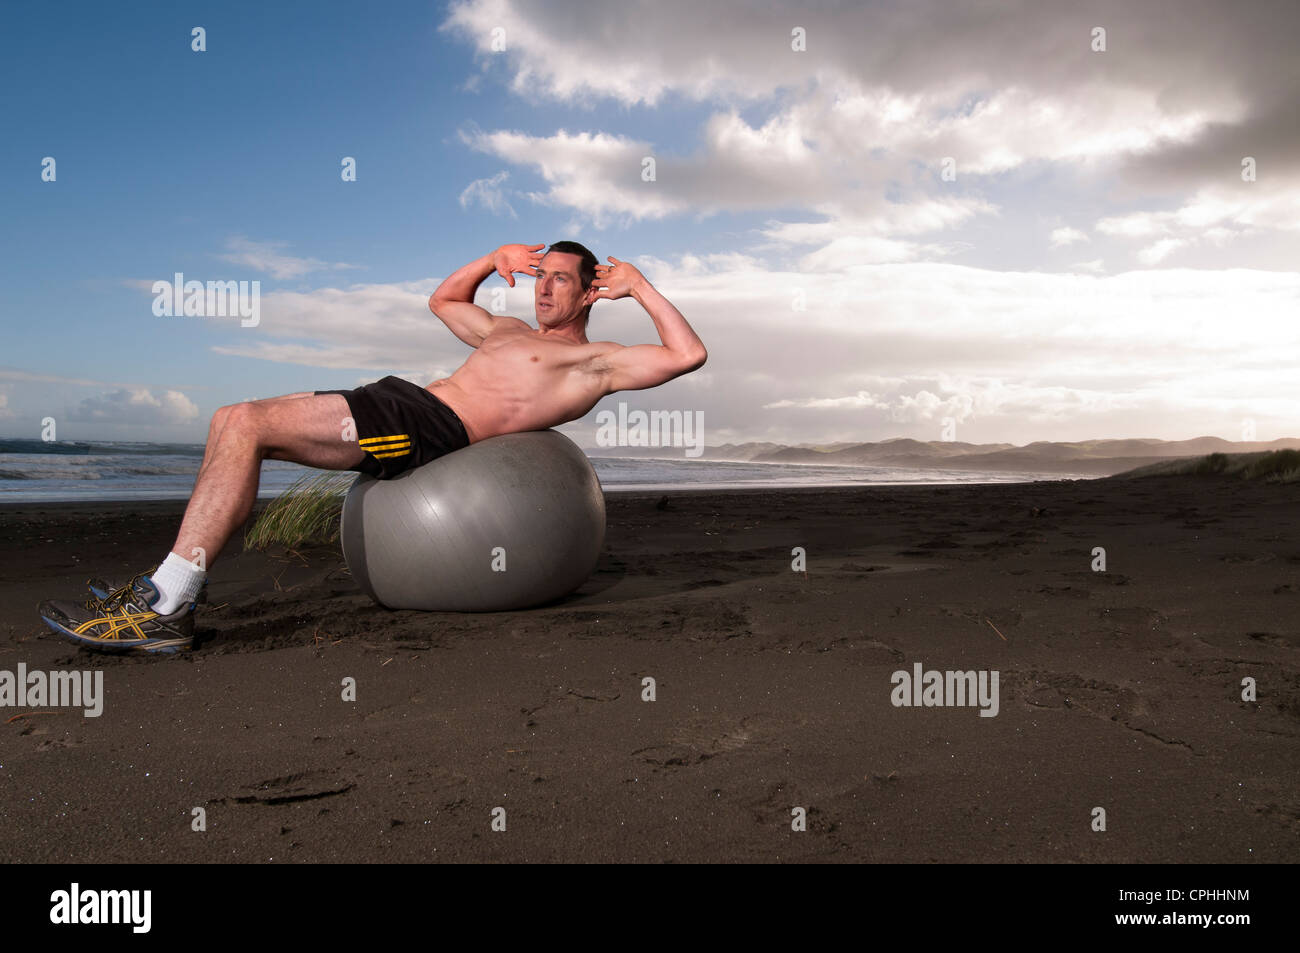 Man training on beach with exercise ball - Stock Image